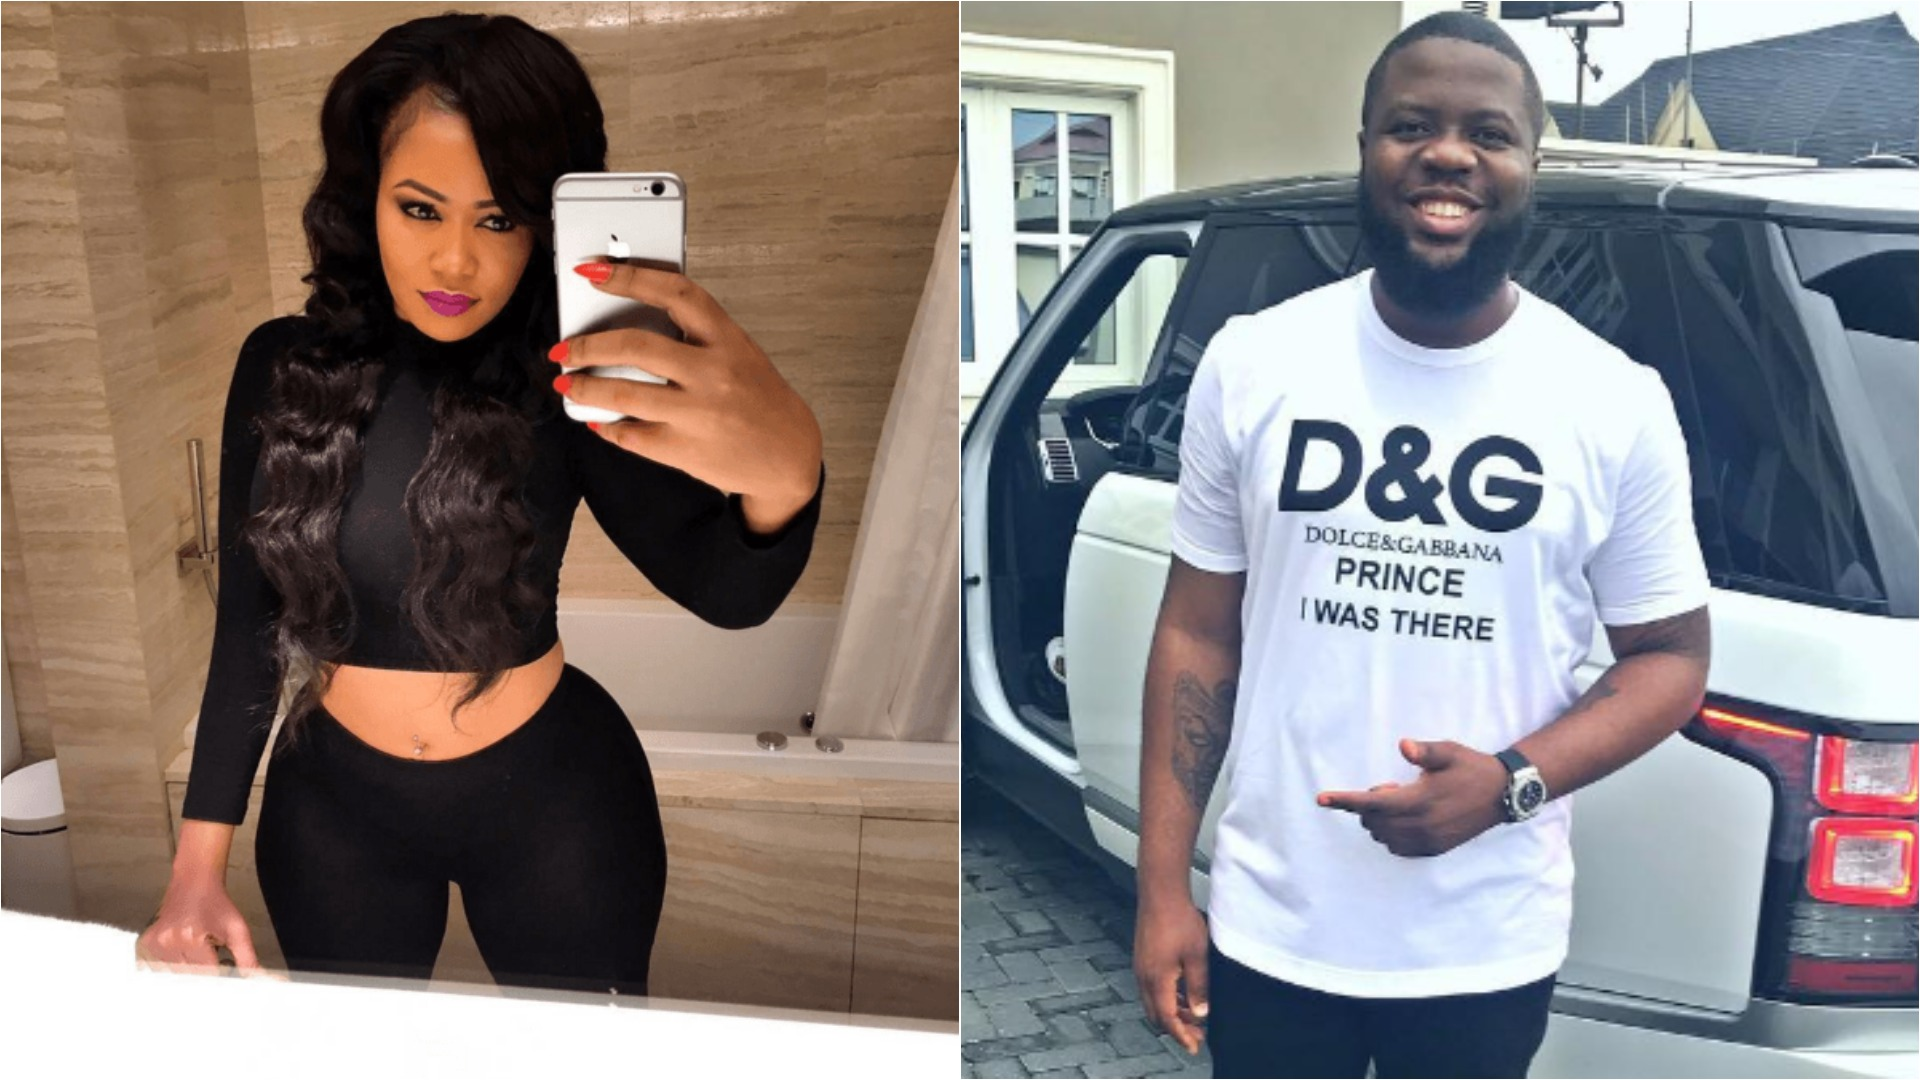 'Hushpuppi, come and collect your people' - Vera Sidika after being called 'Hushmummi'